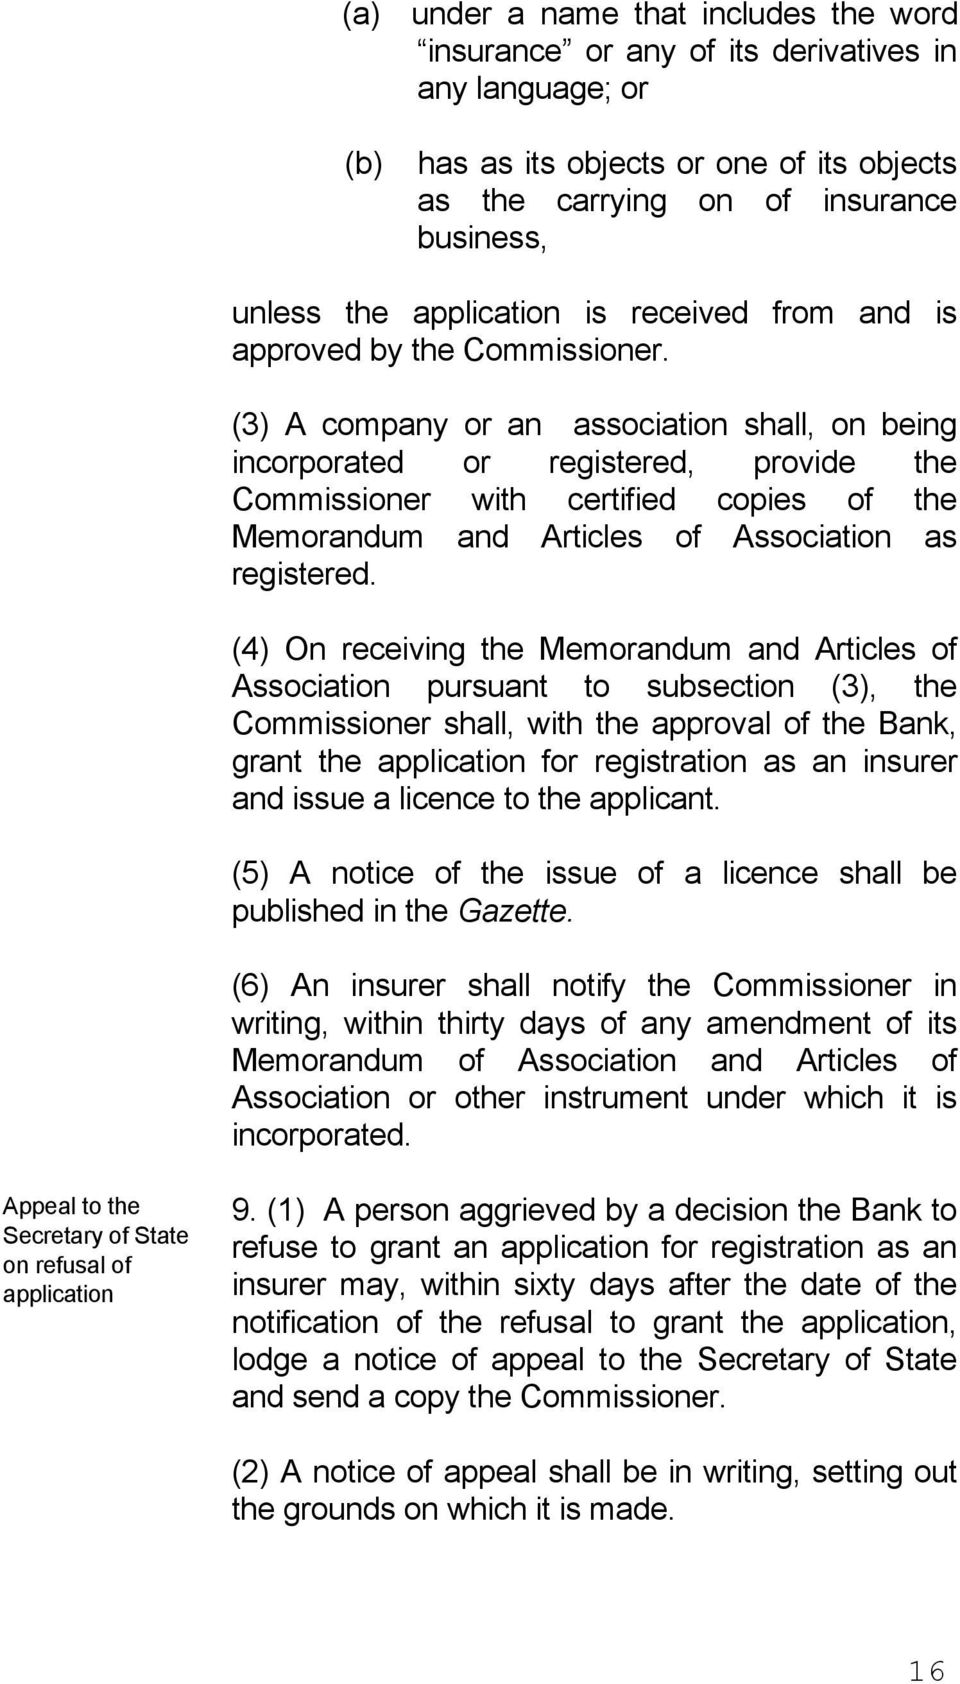 (3) A company or an association shall, on being incorporated or registered, provide the Commissioner with certified copies of the Memorandum and Articles of Association as registered.